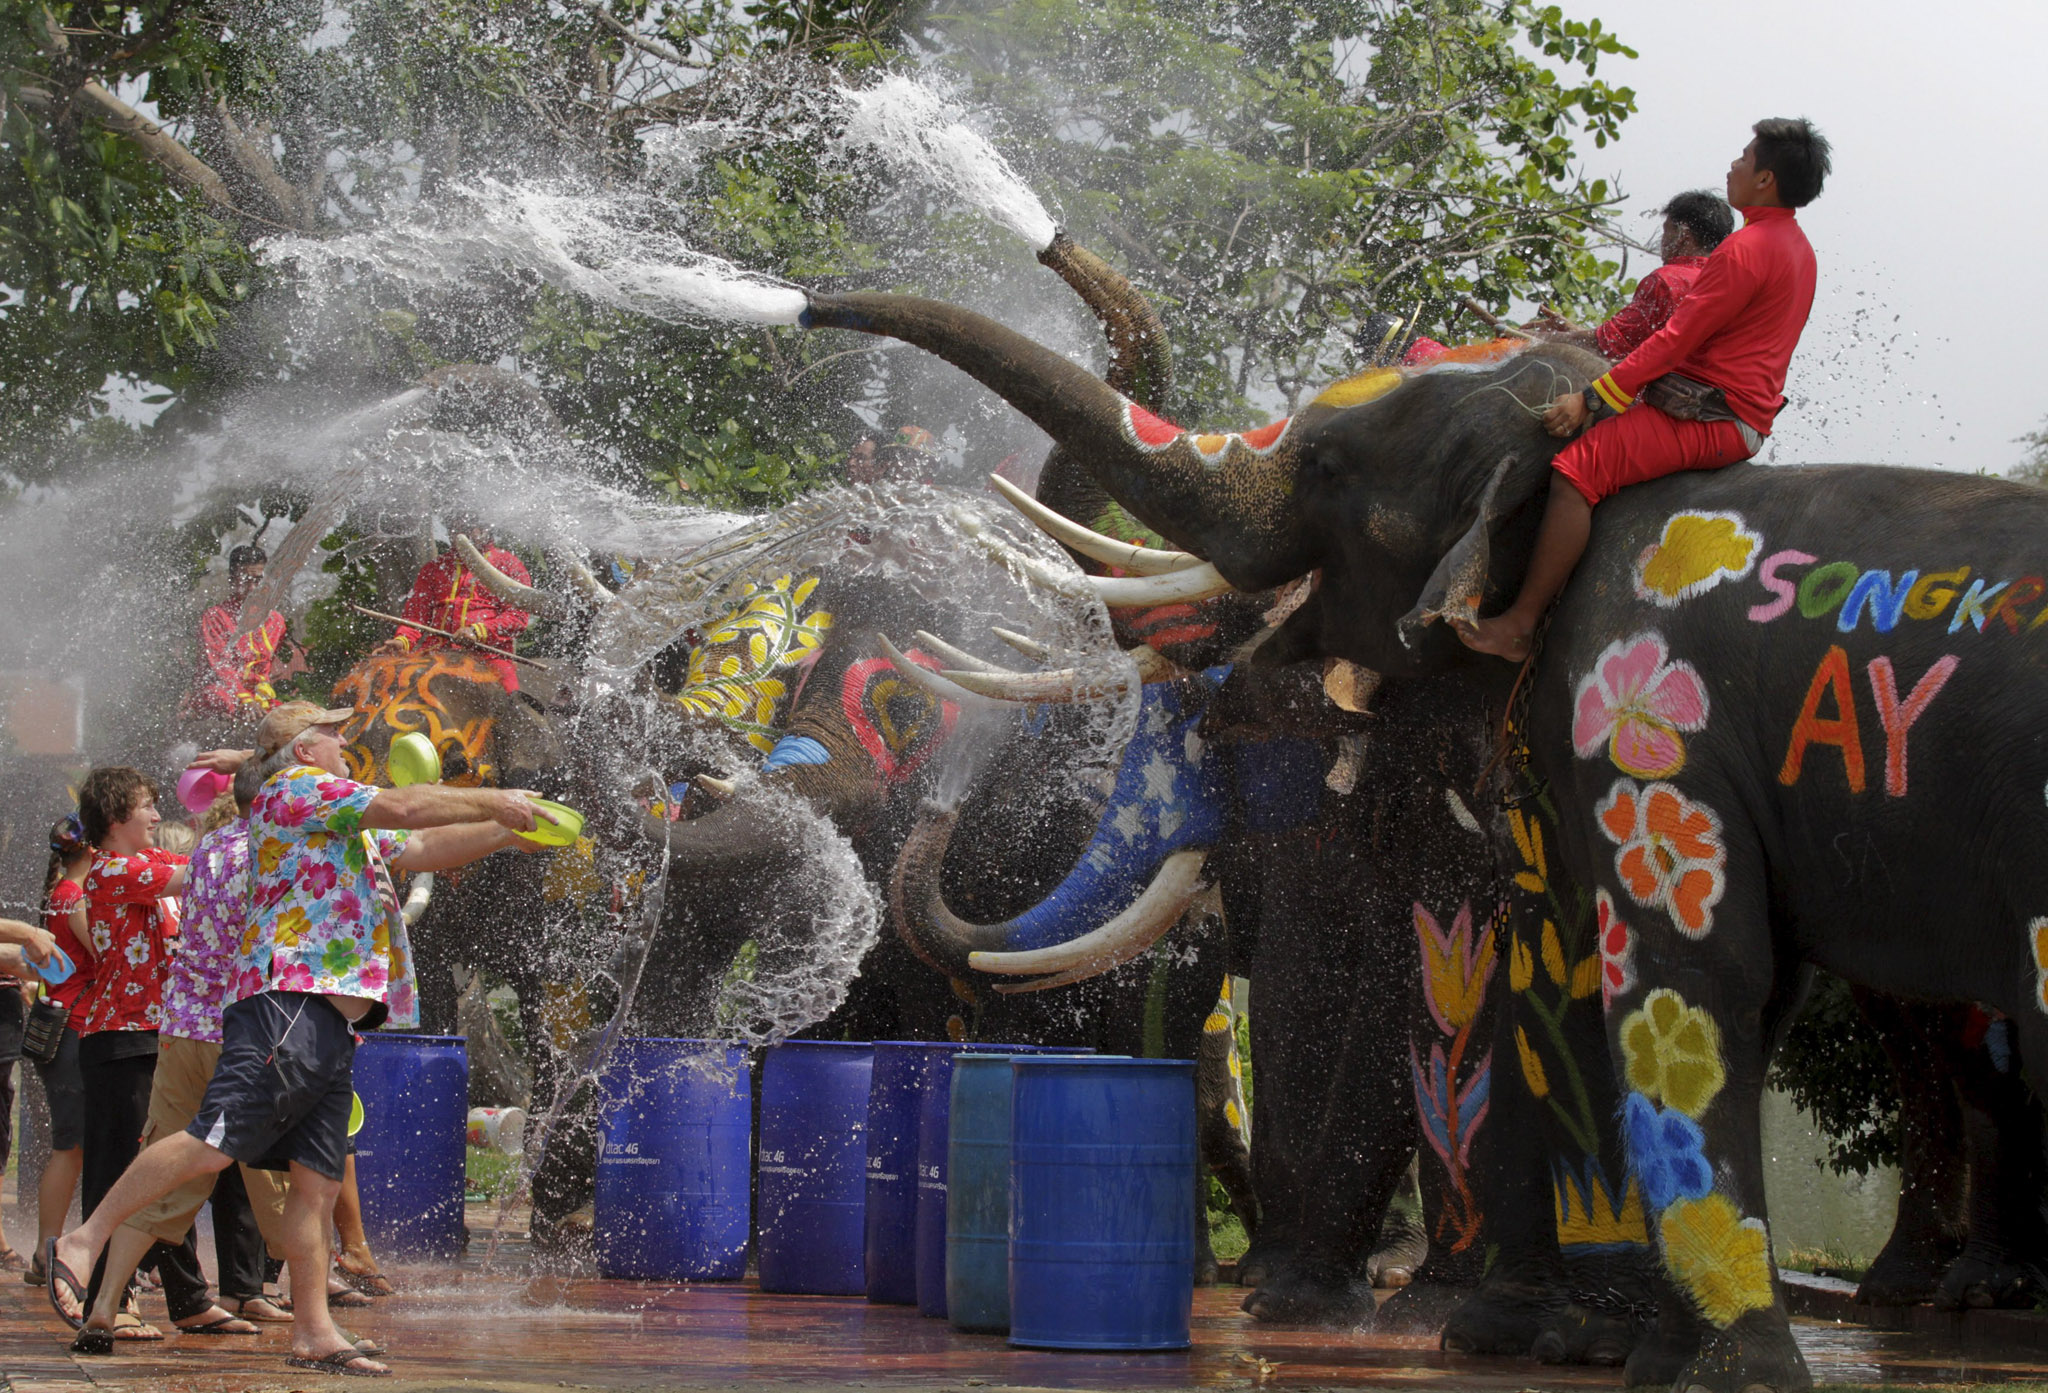 Elephants spray tourists with water in celebration of the Songkran water festival in Thailand's Ayutthaya province, north of Bangkok